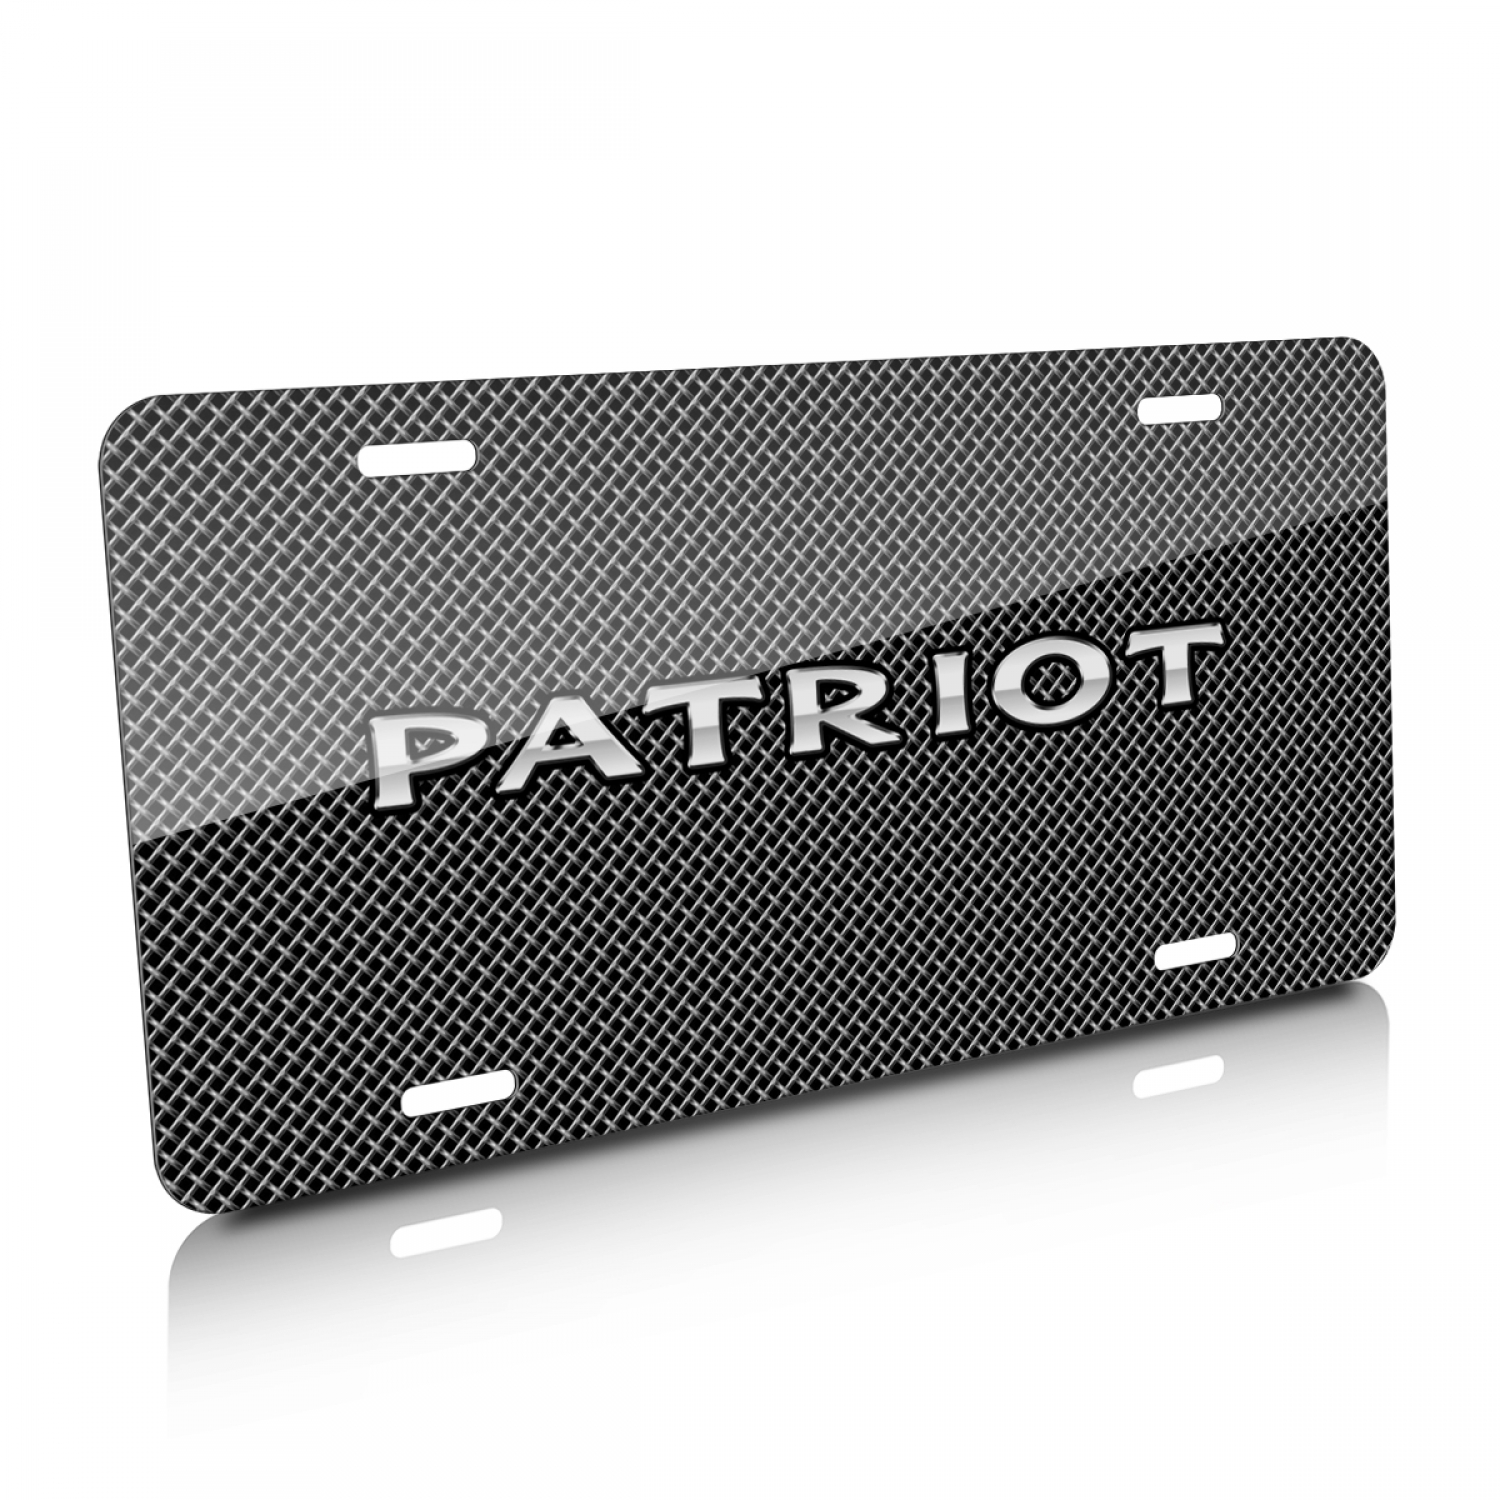 Jeep Patriot Mesh Grill Graphic Aluminum License Plate